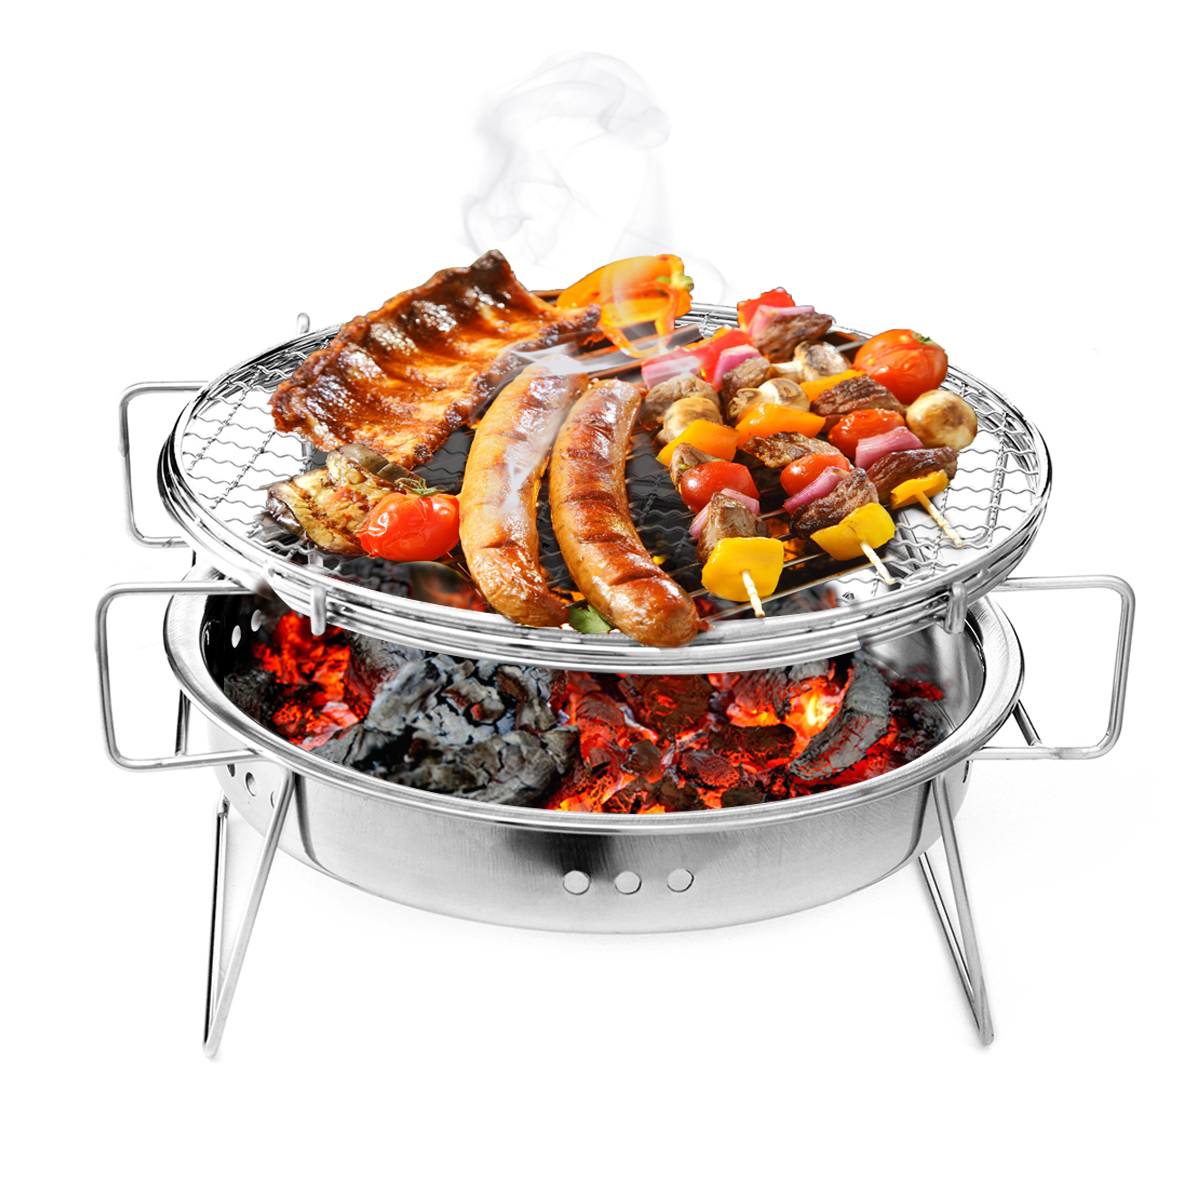 aliexpress : buy outdoor mini bbq grill stainless steel bbq